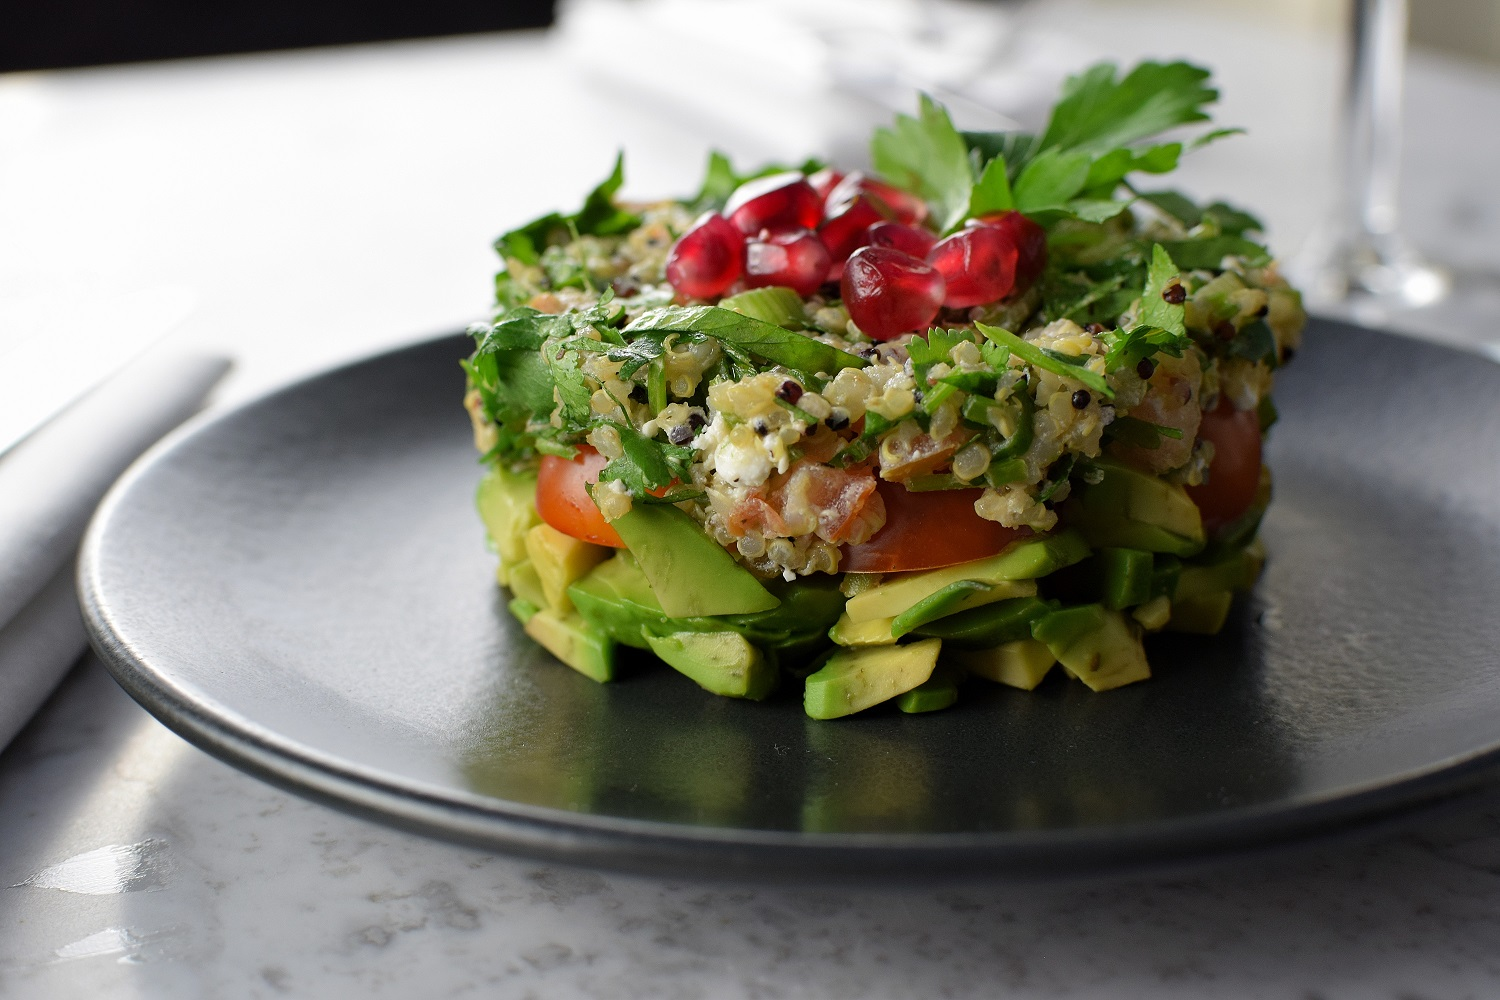 Shish Taouk and Avocado Salad